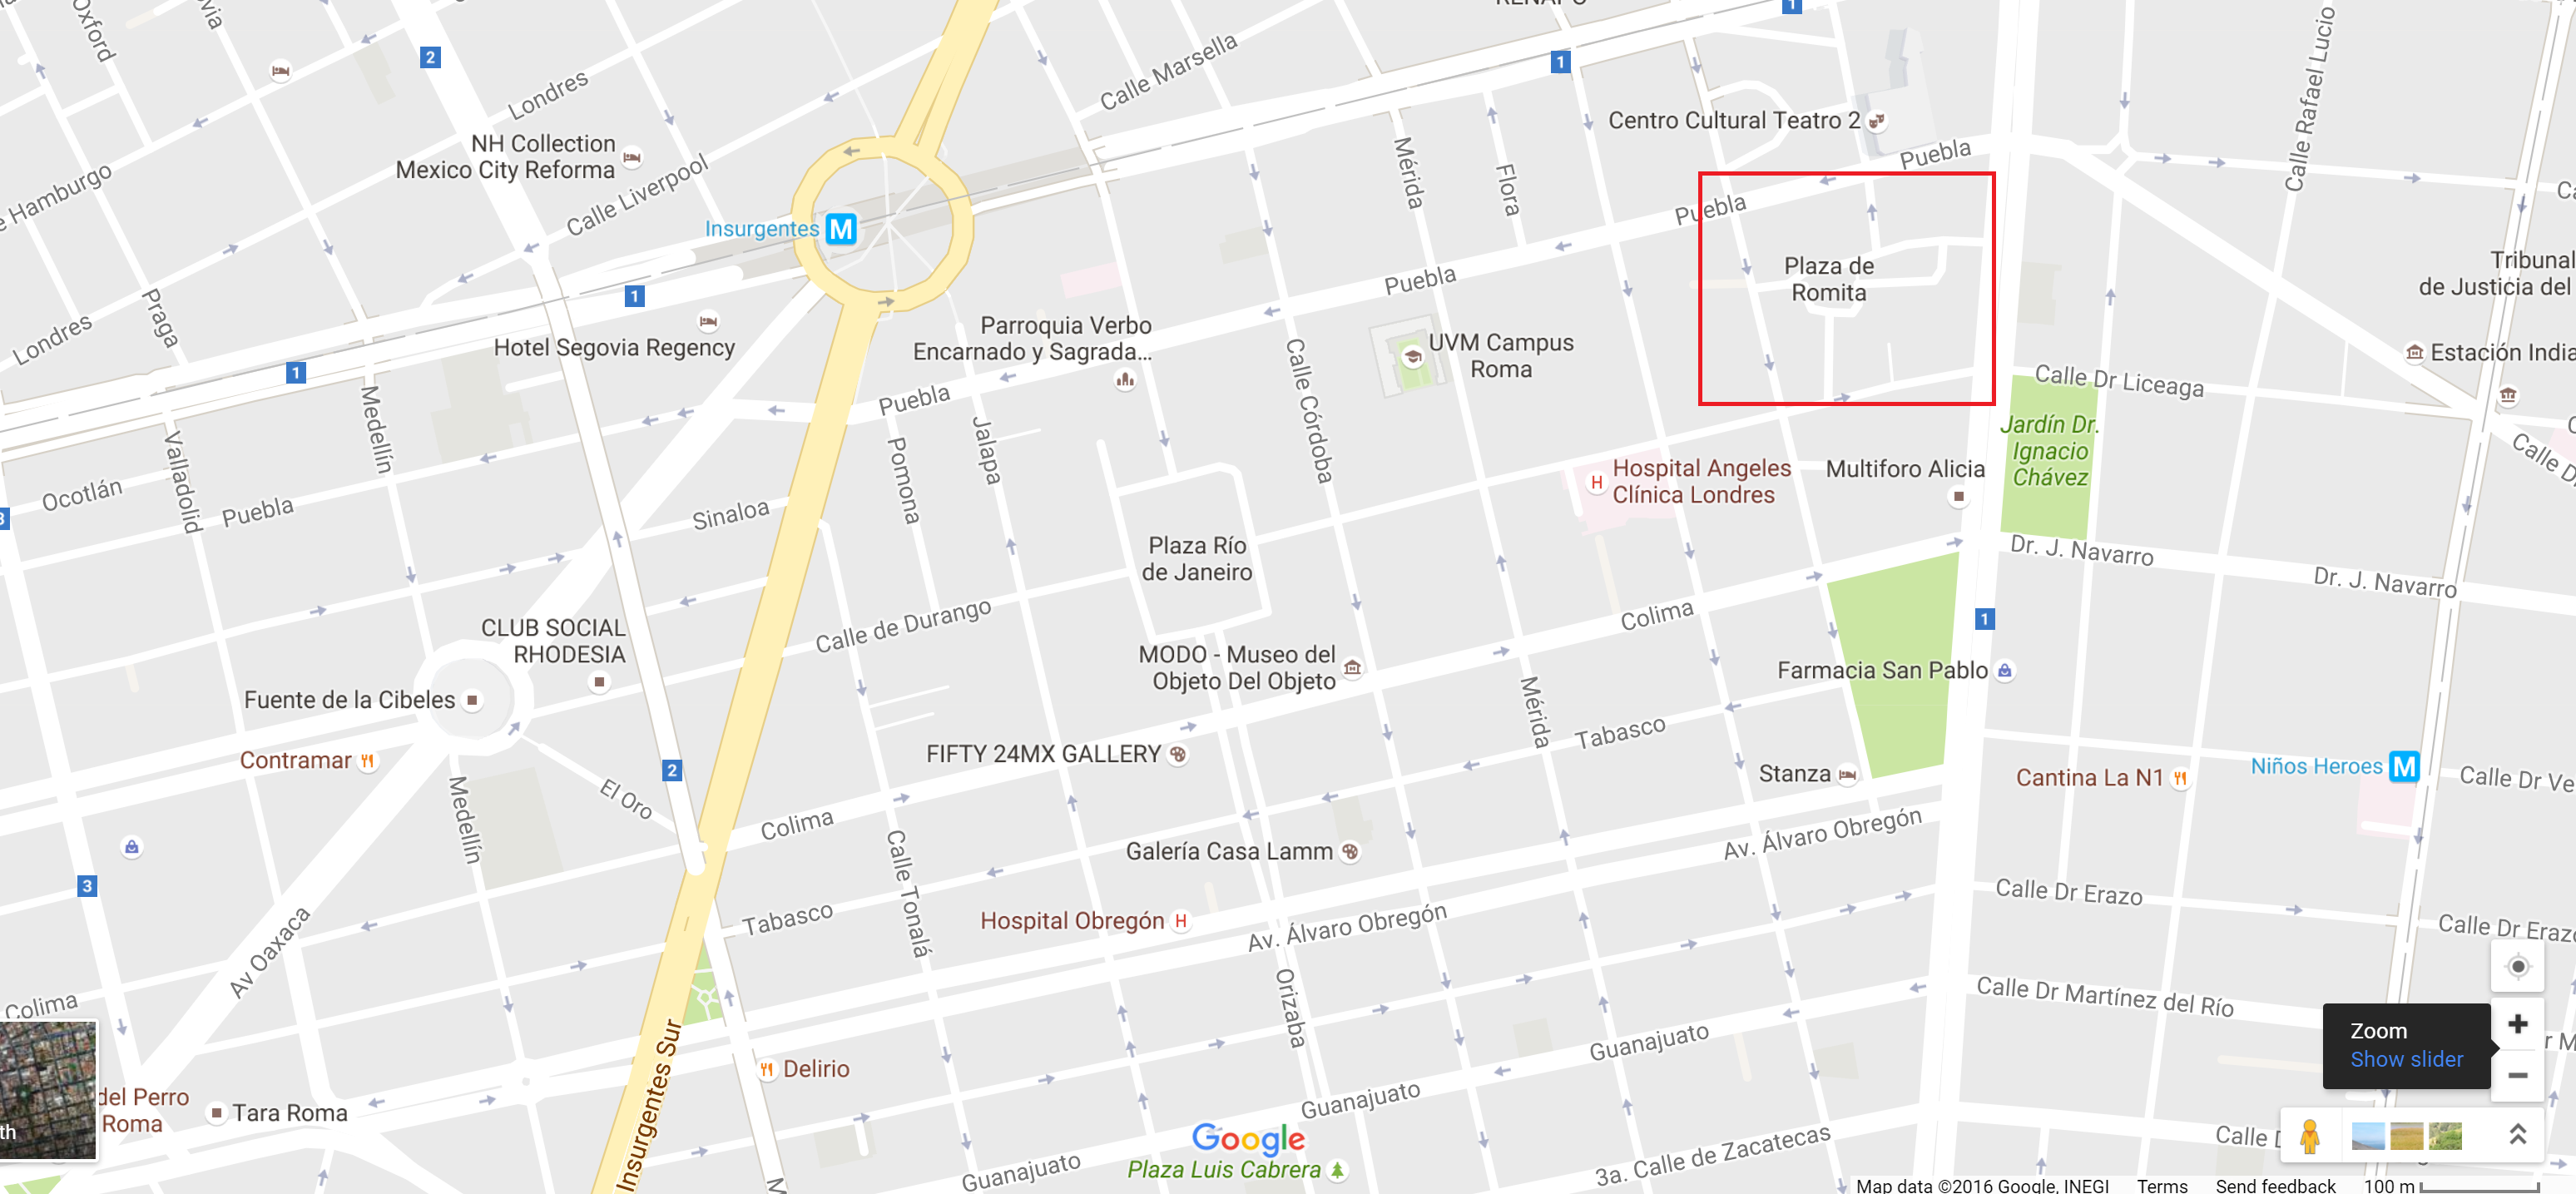 map of roma norte, mexico city